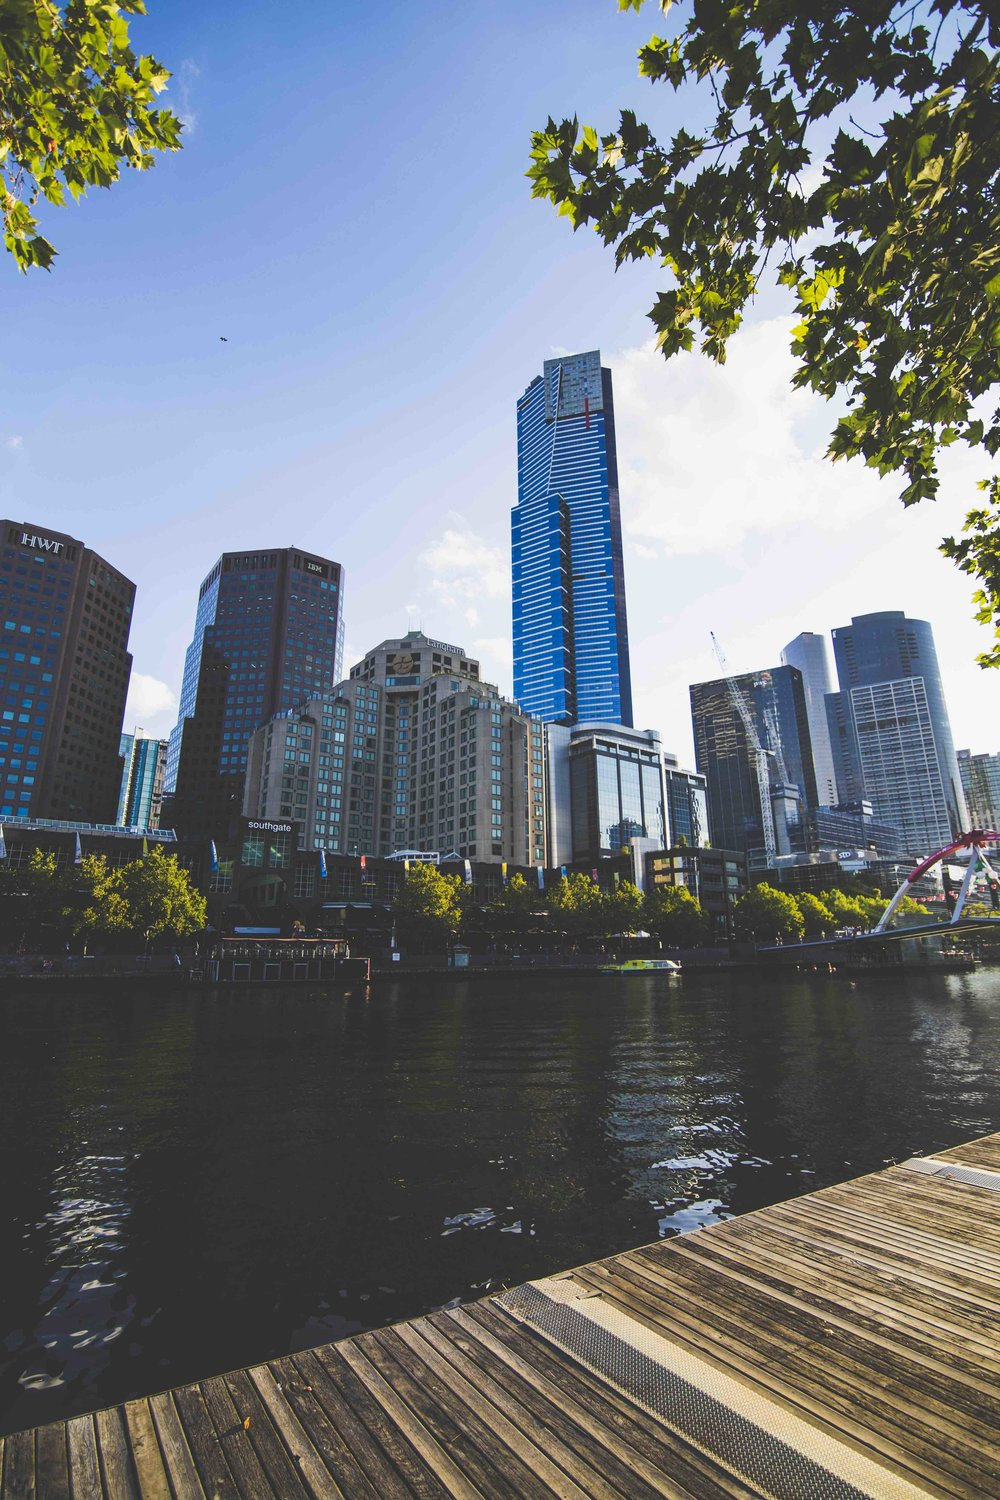 Yarra River's view. Photo: Marine Raynard